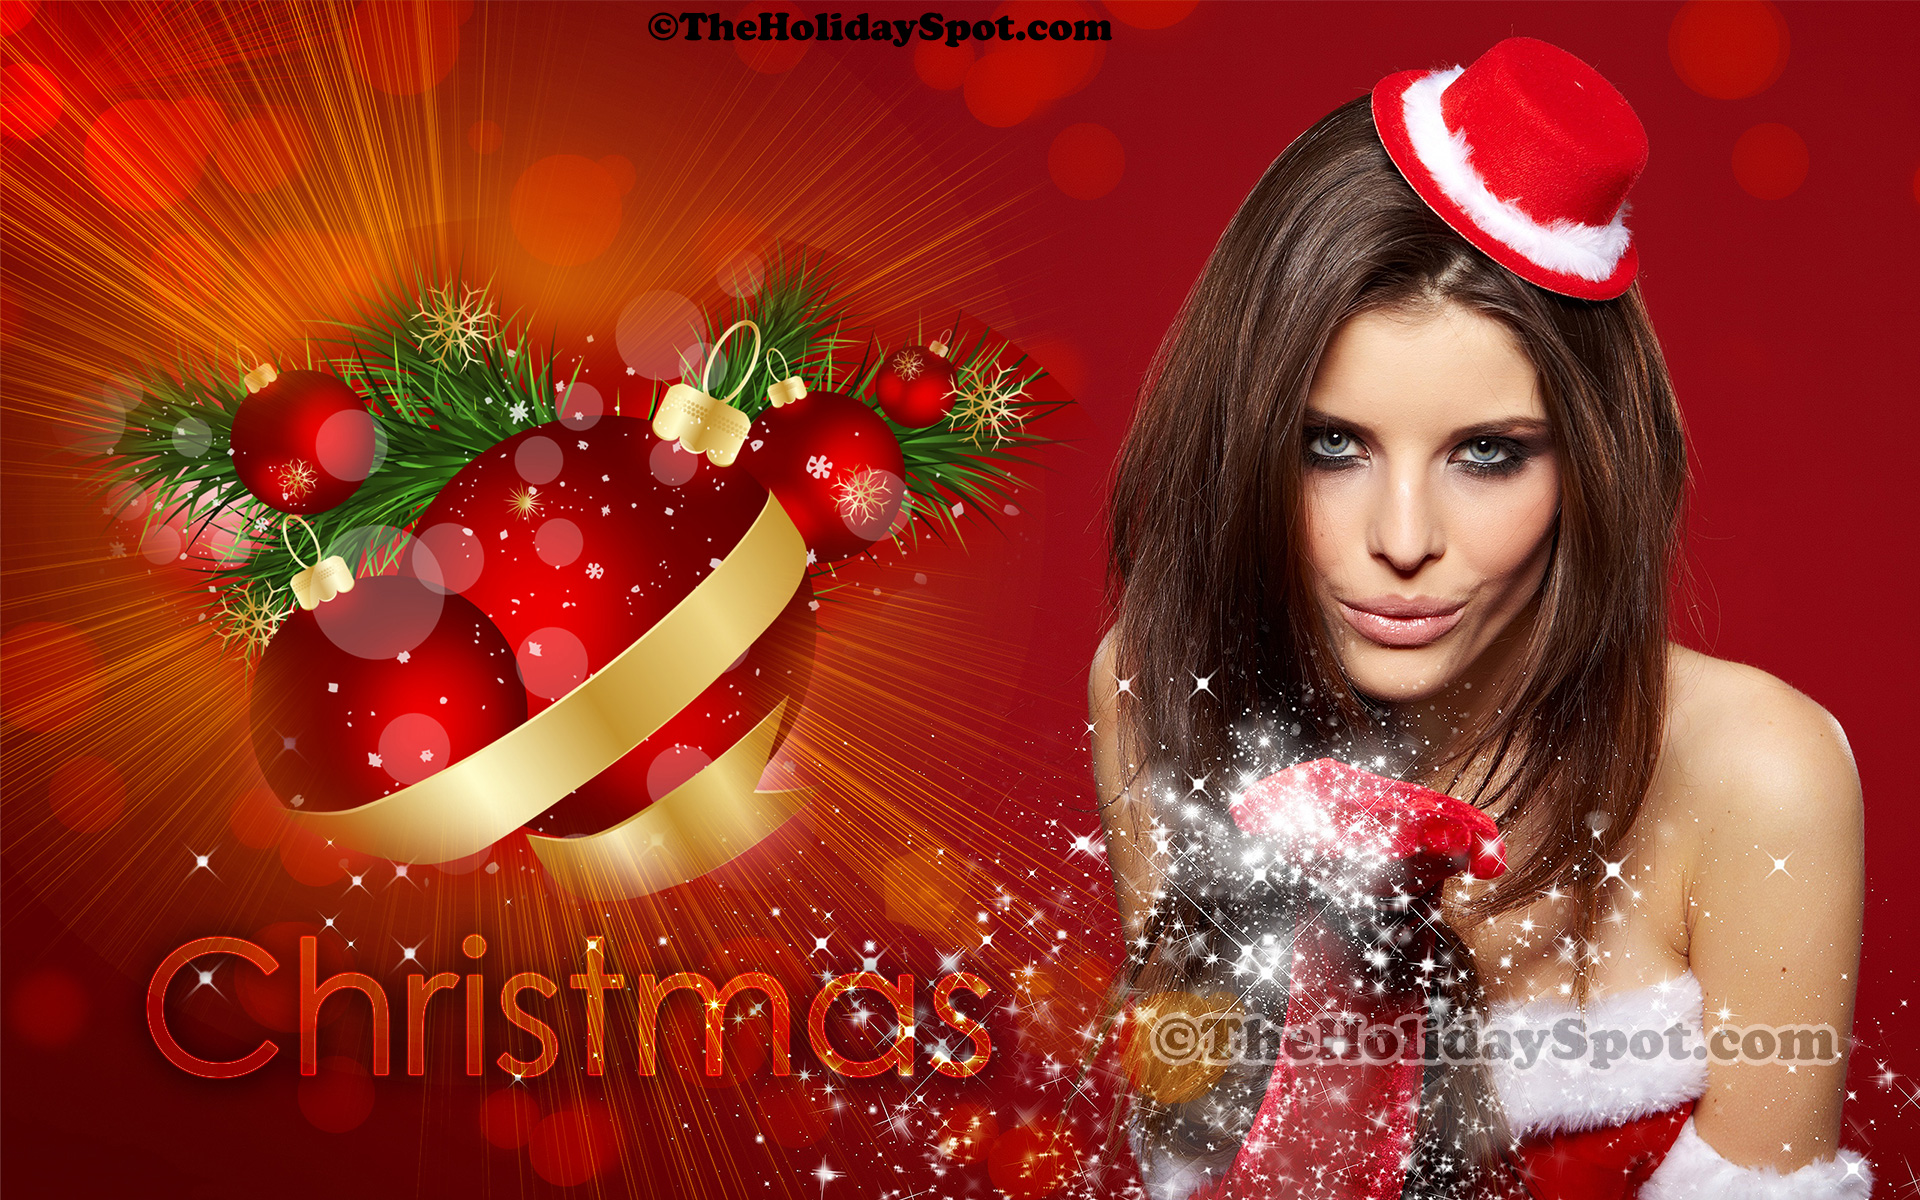 christmas wallpapers free hd background christmas wallpapers free hd background